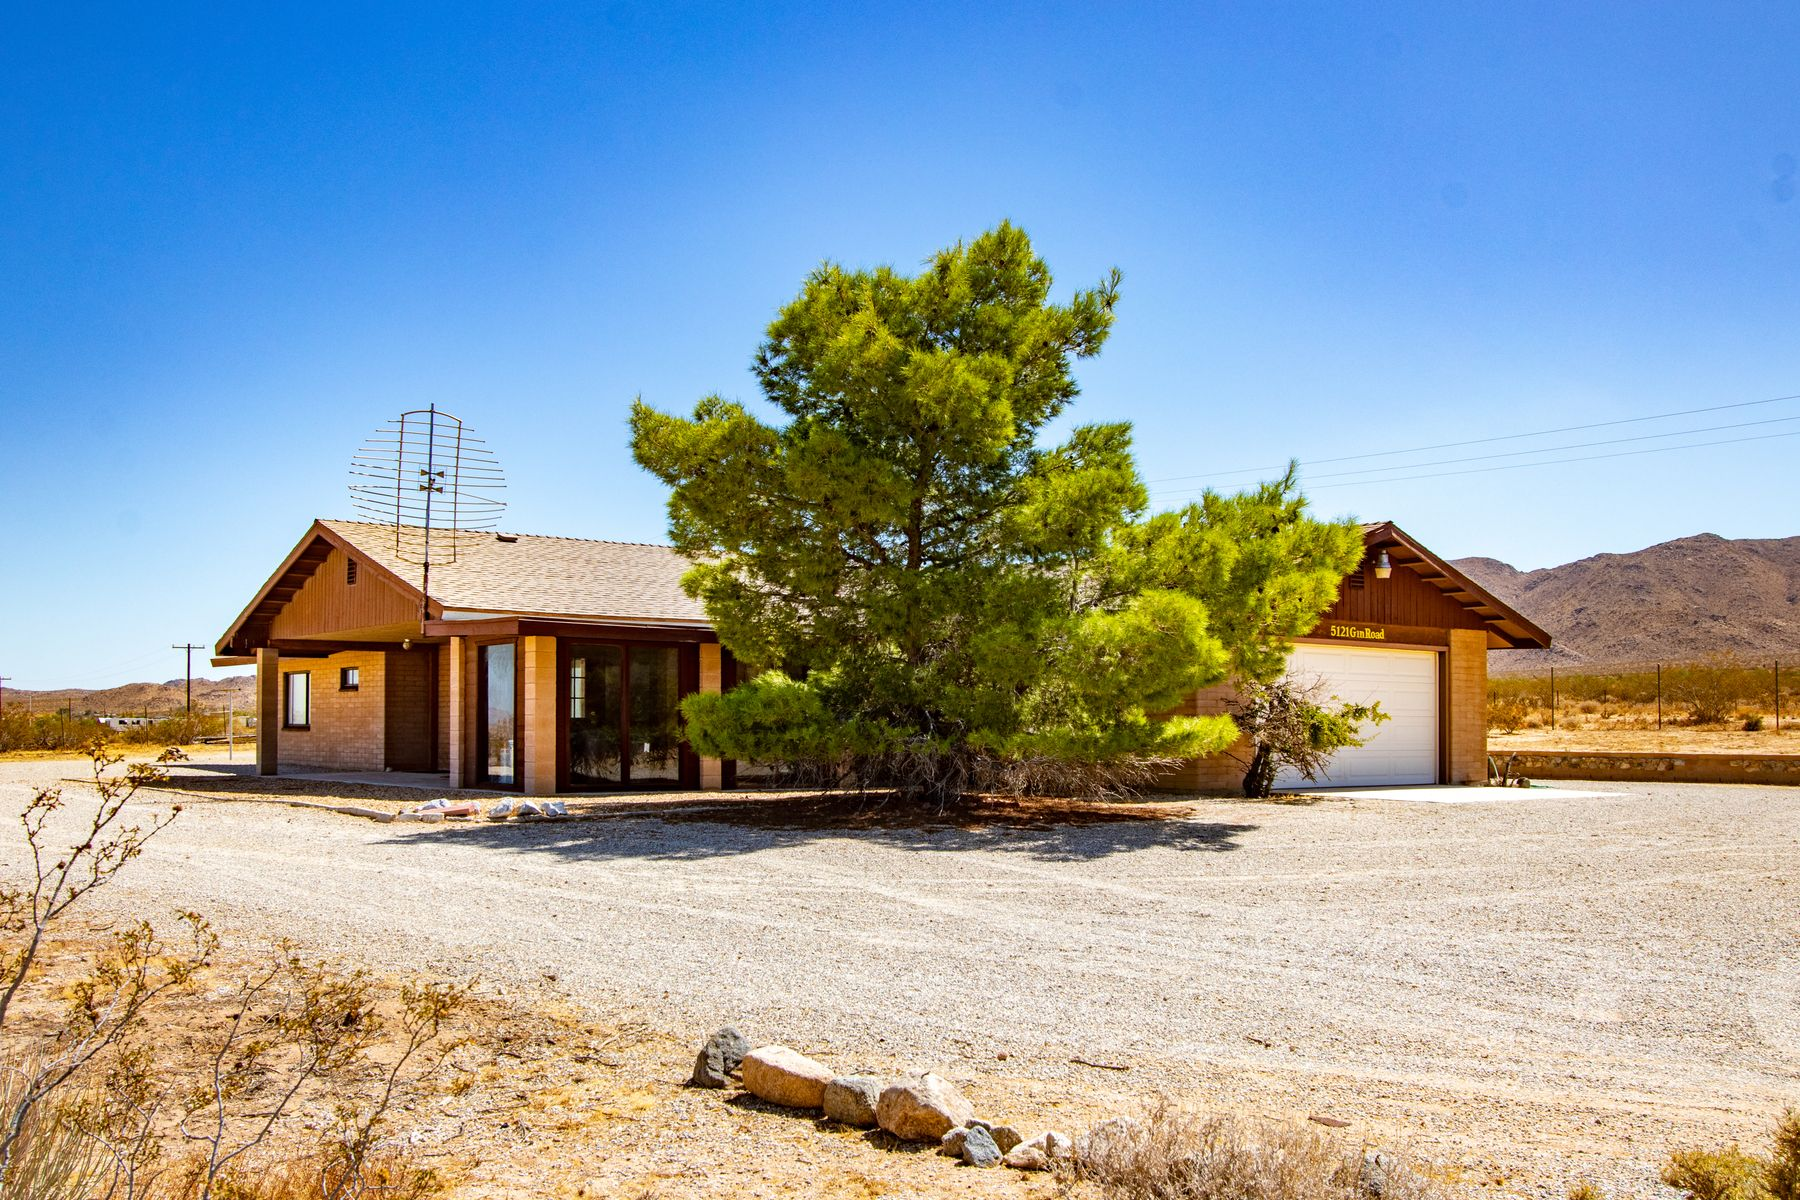 Single Family Homes for Sale at 5121 Gin Road Johnson Valley, CA 5121 Gin Road Johnson Valley, California 92285 United States